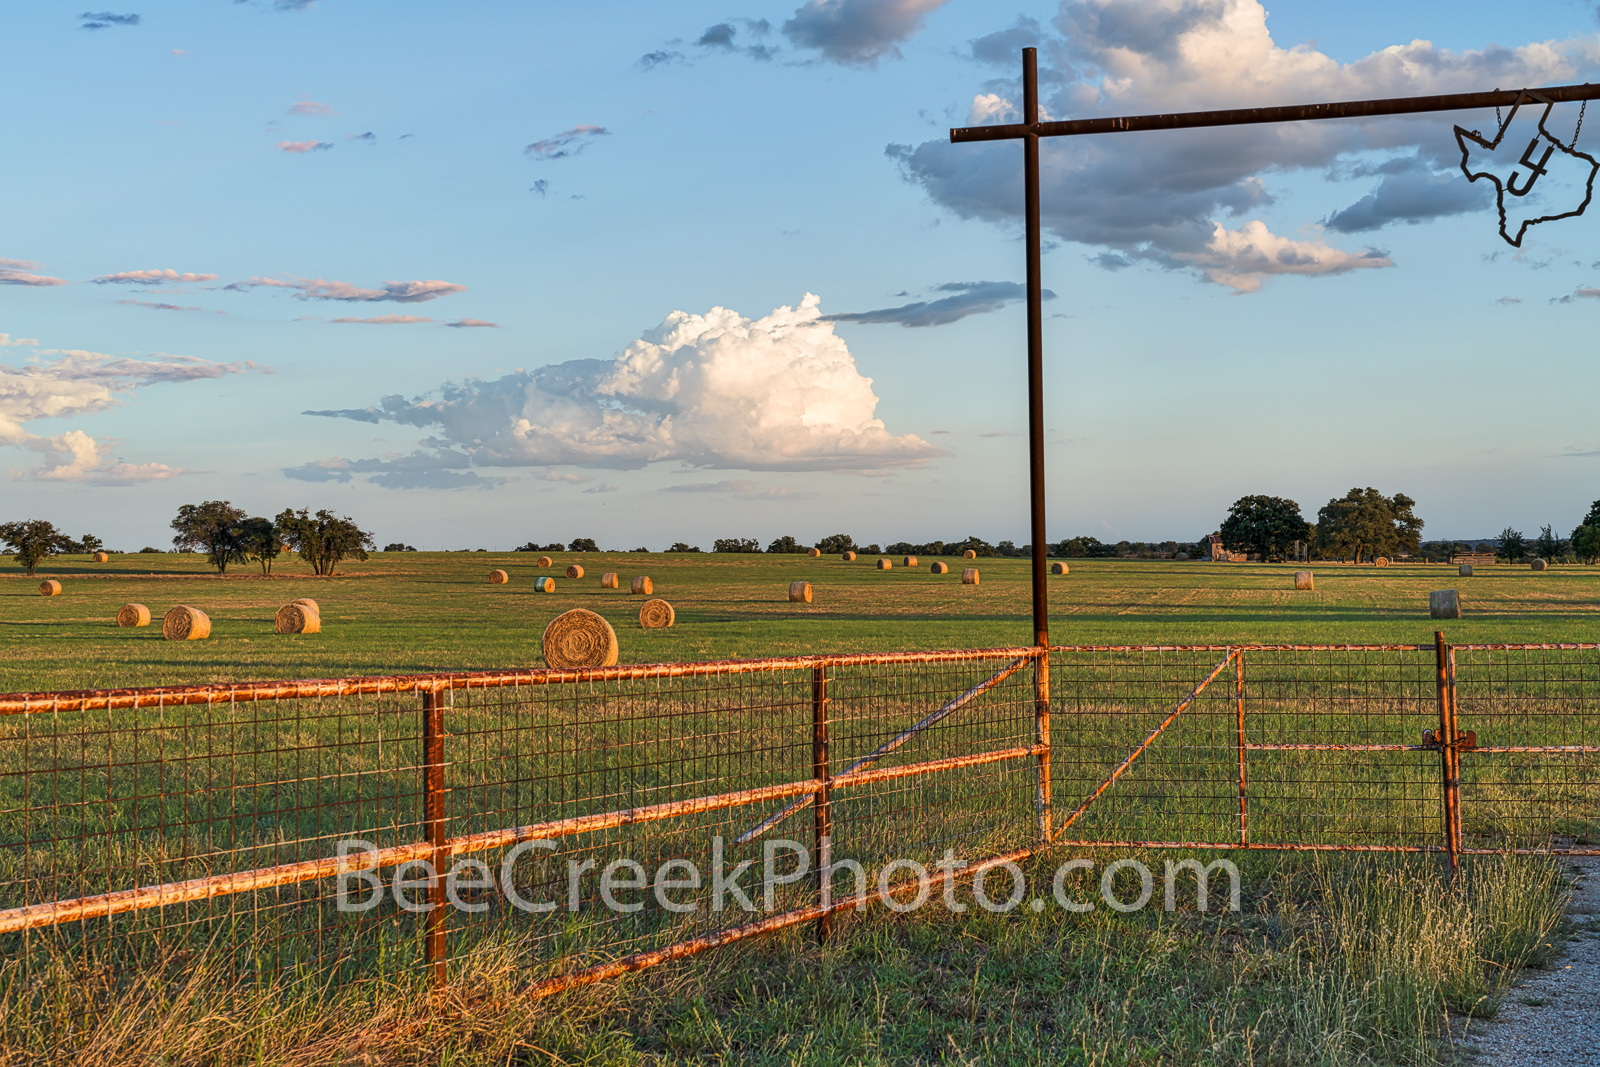 Haybales, haybales, Texas Hill Country, landscape, grasses, round bales, feed, horses, cows, goats, sheep, sunset, clouds, evening, farmer, field, llano, Texas, gate,  , photo